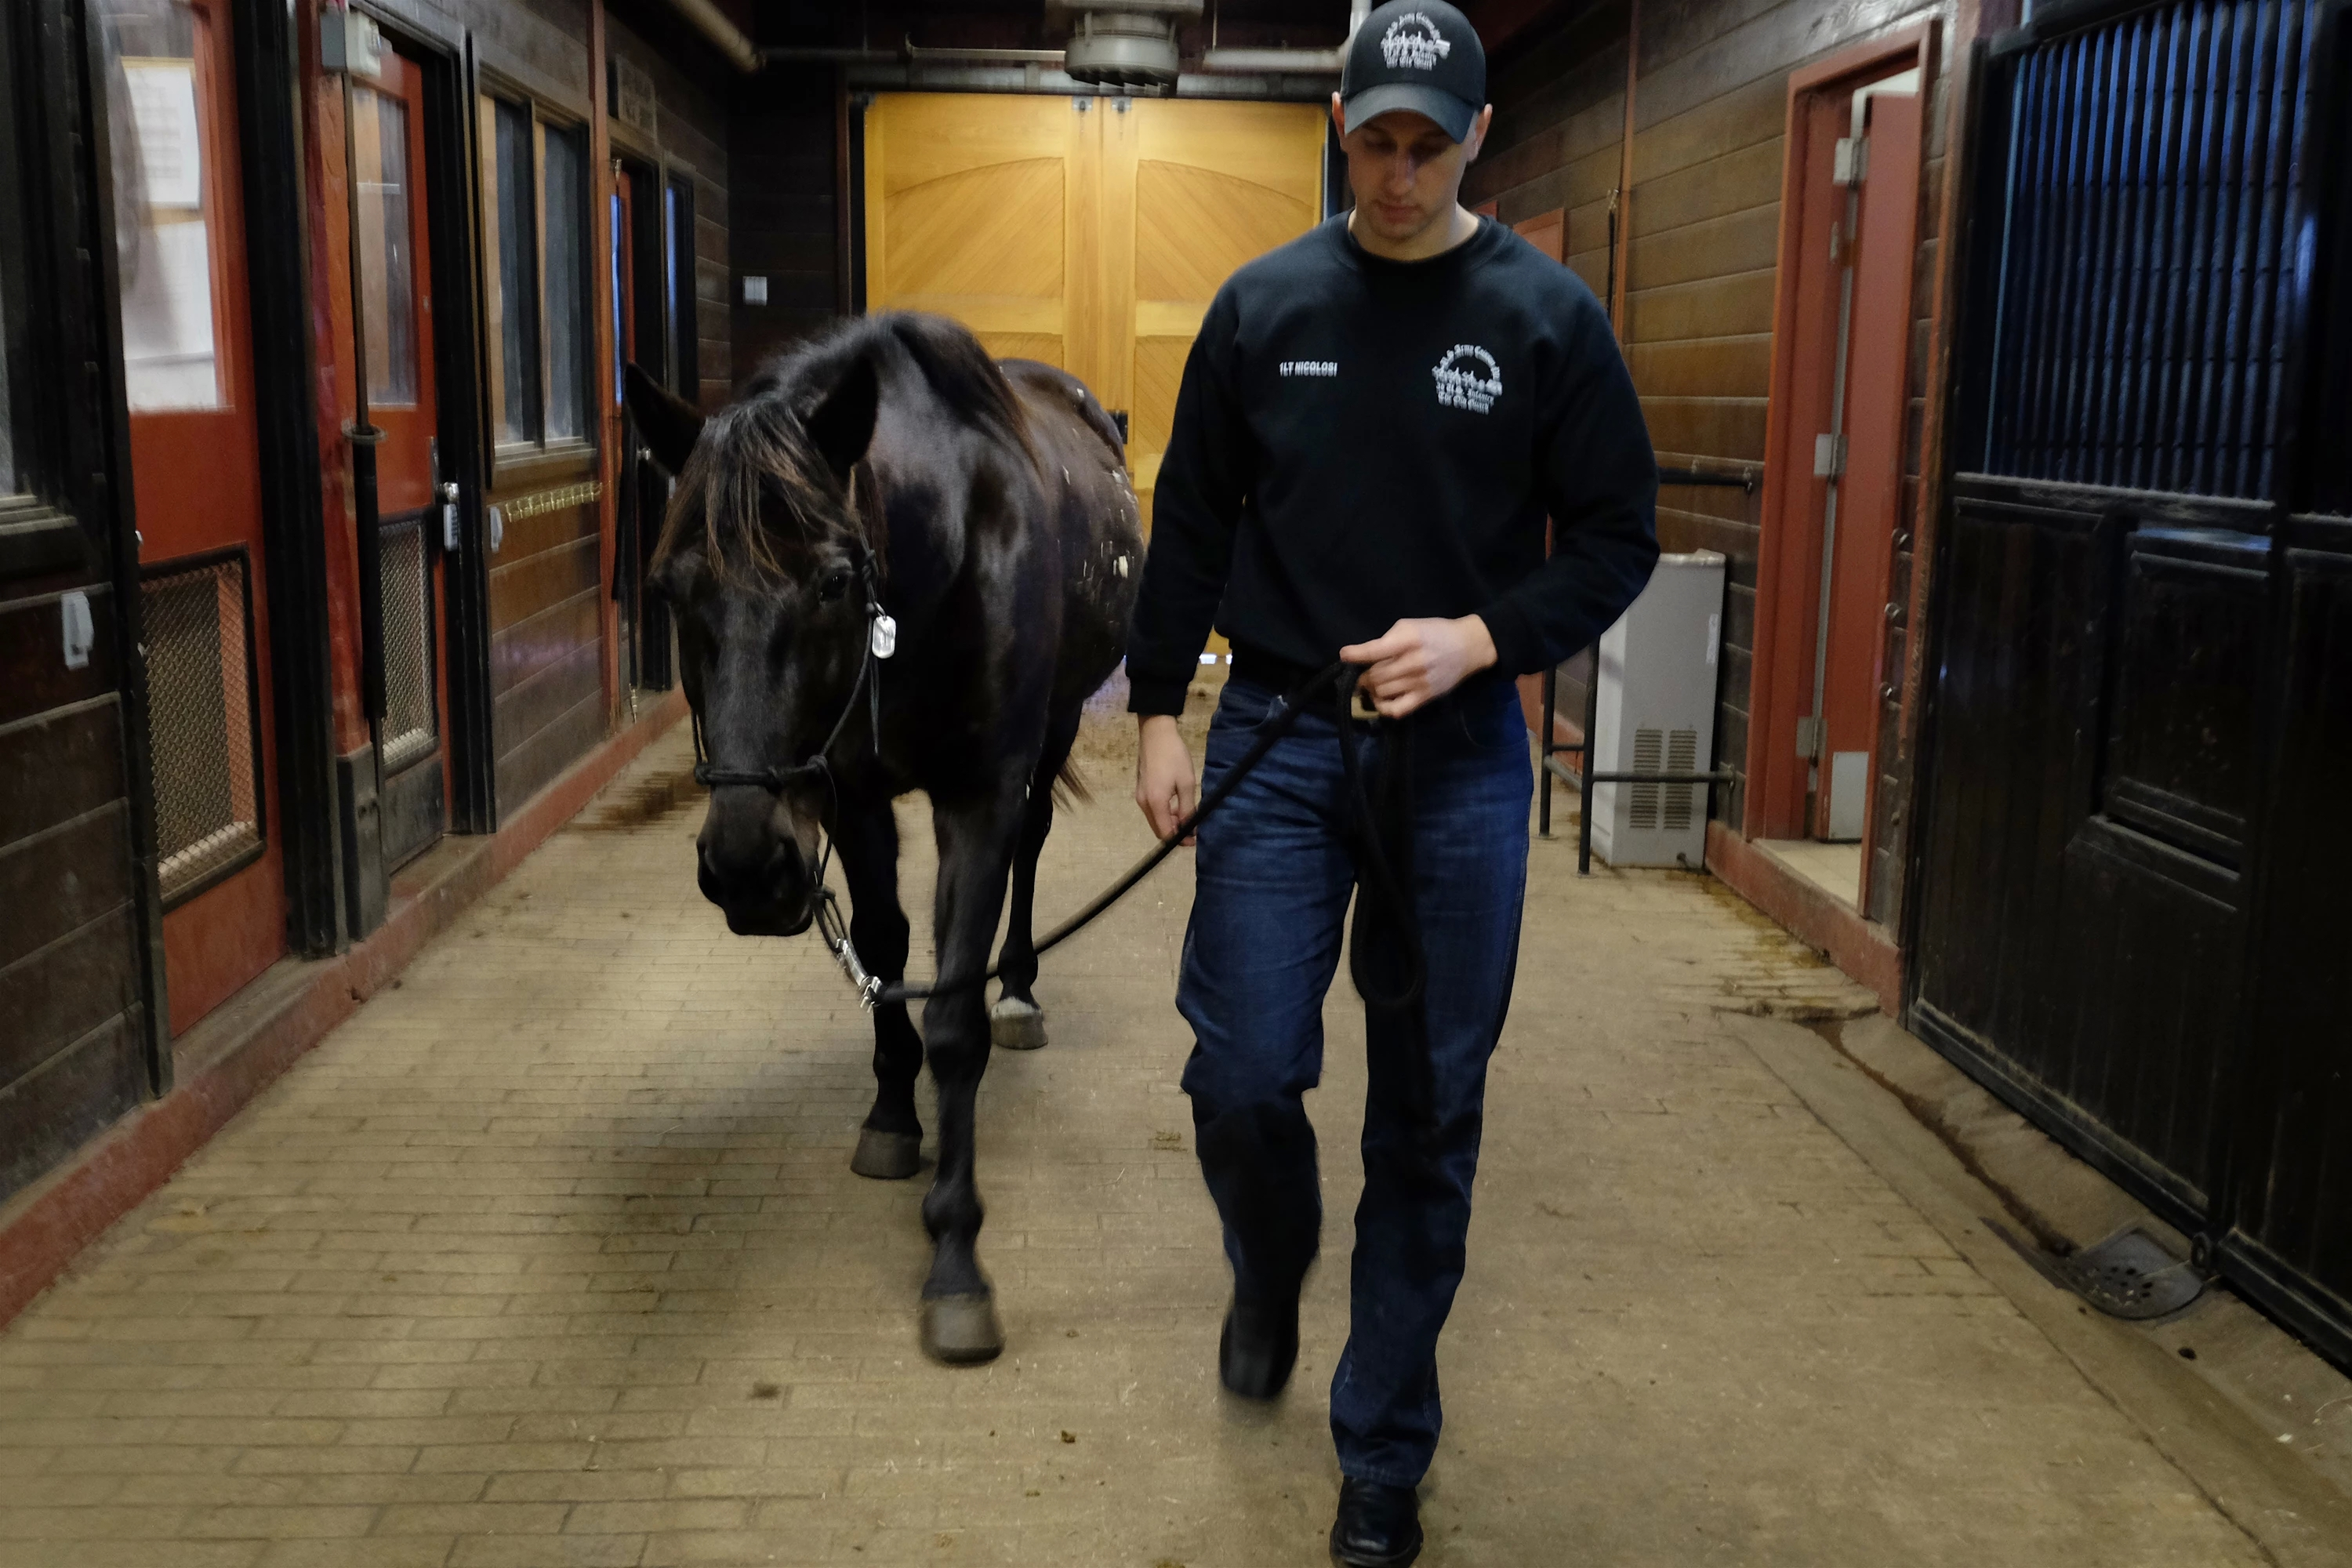 Lieutenant Daniel Nicolosi escorts Kennedy — one of two horses available for adoption — in the Caisson barn at Fort Myer. (Bonnie Jo Mount/Washington Post)